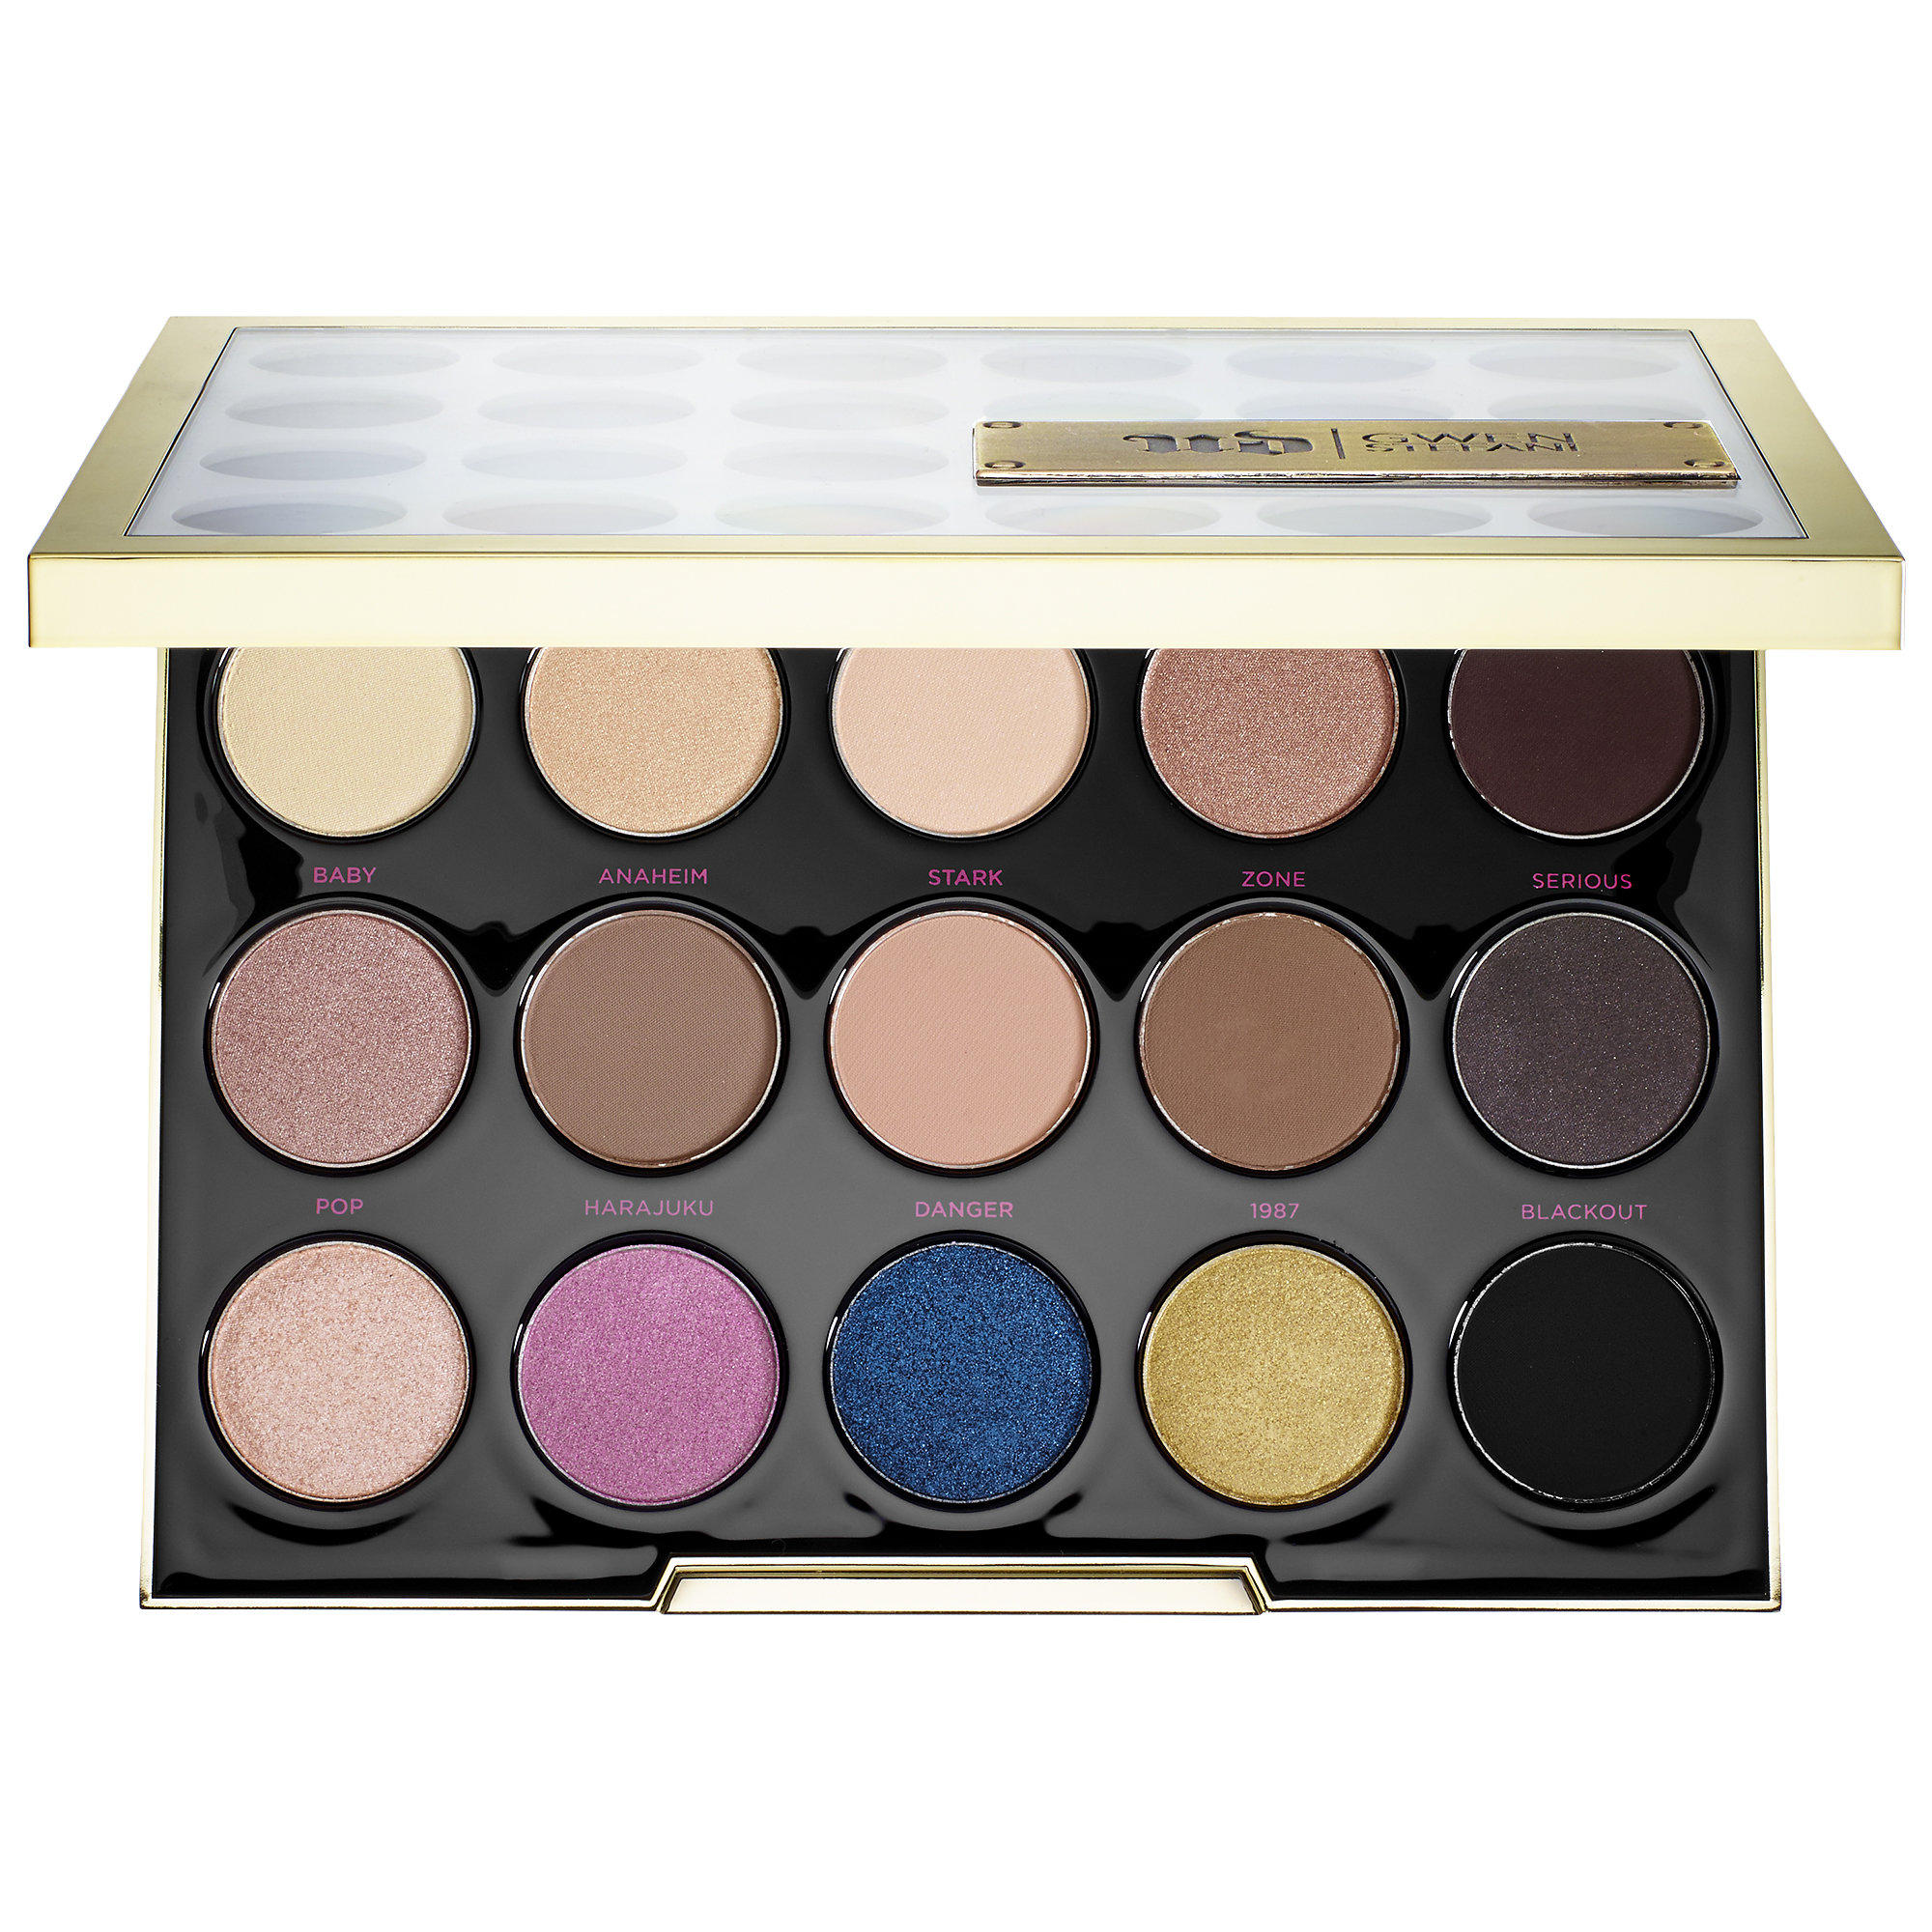 New ReleaseUrban Decay launched New UD Gwen Stefani Eyeshadow Palette